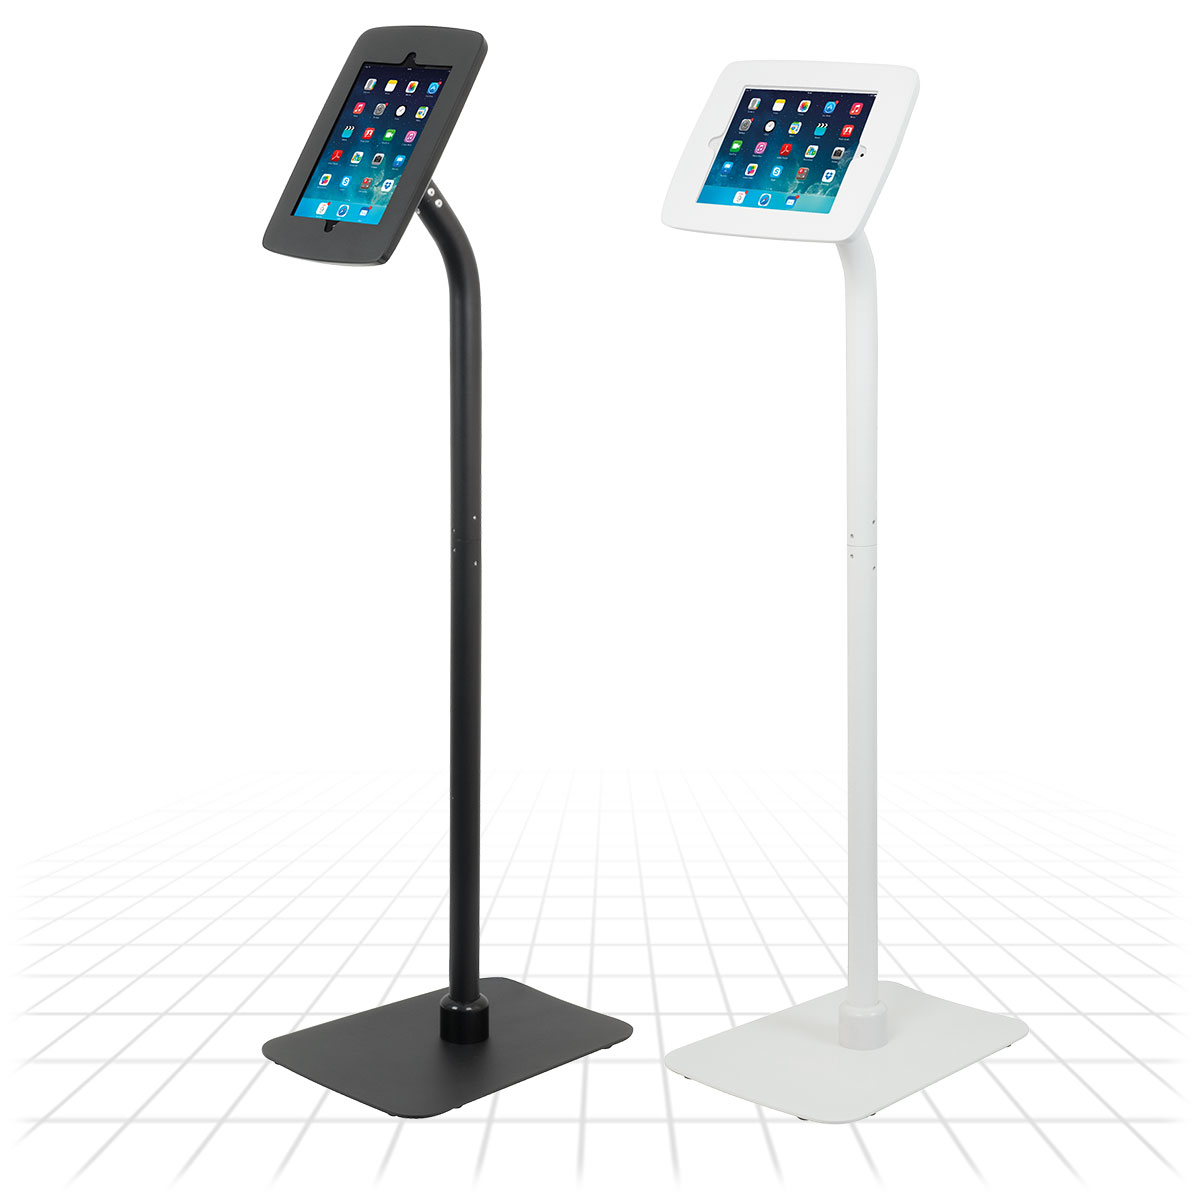 Launchpad Tablet Stand Display Stands